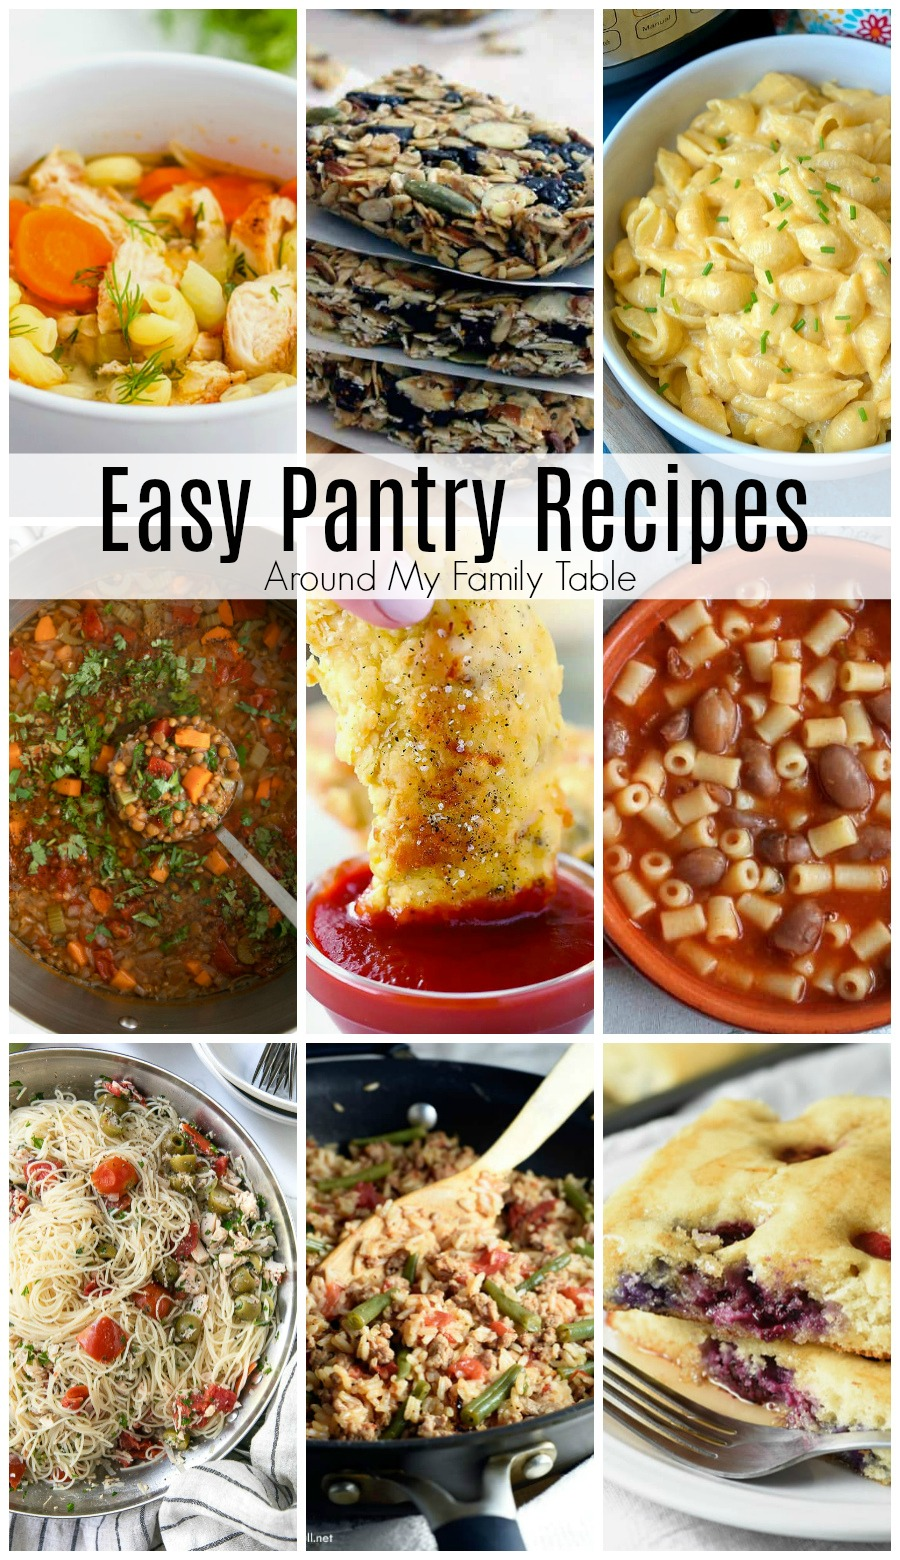 Easy Pantry Recipes are a great option whether you are trying to live within a small budget, quarantined to your home during a pandemic or natural disaster, or just trying to use up what you have for a pantry challenge. via @slingmama